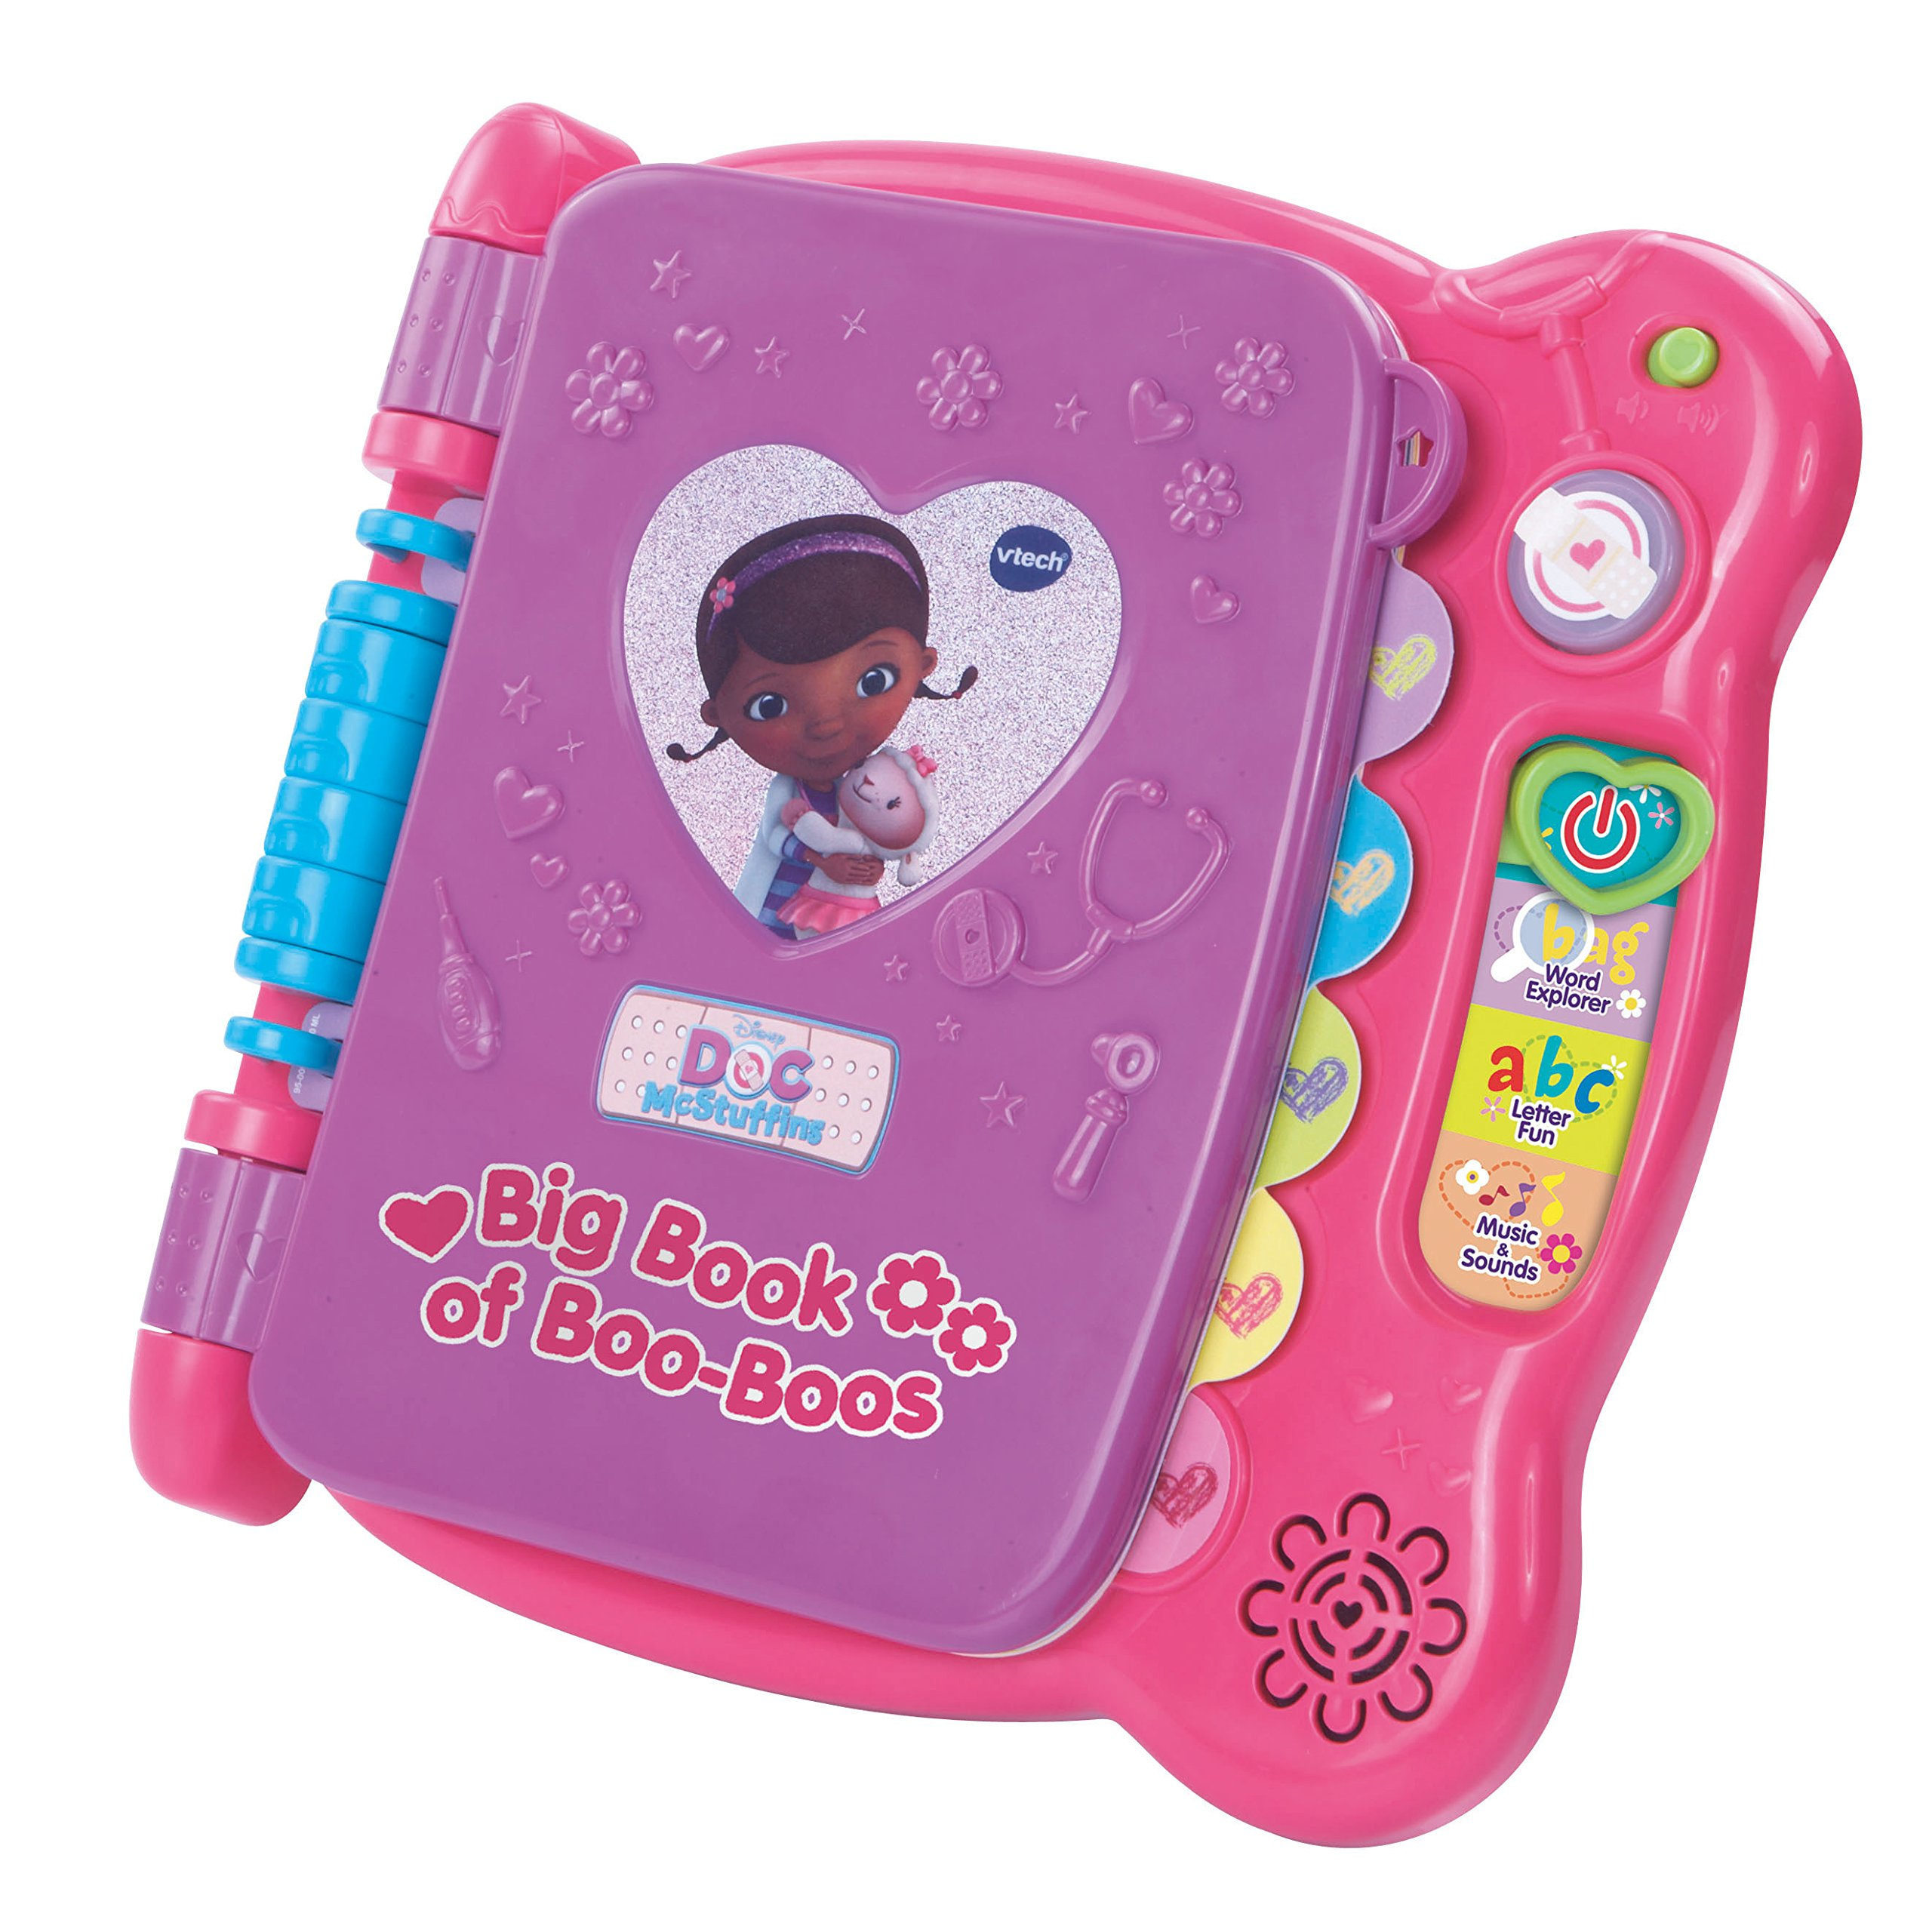 VTech Disney Doc McStuffins Discover and Learn Big Book of Boo-Boos by VTech (Image #3)